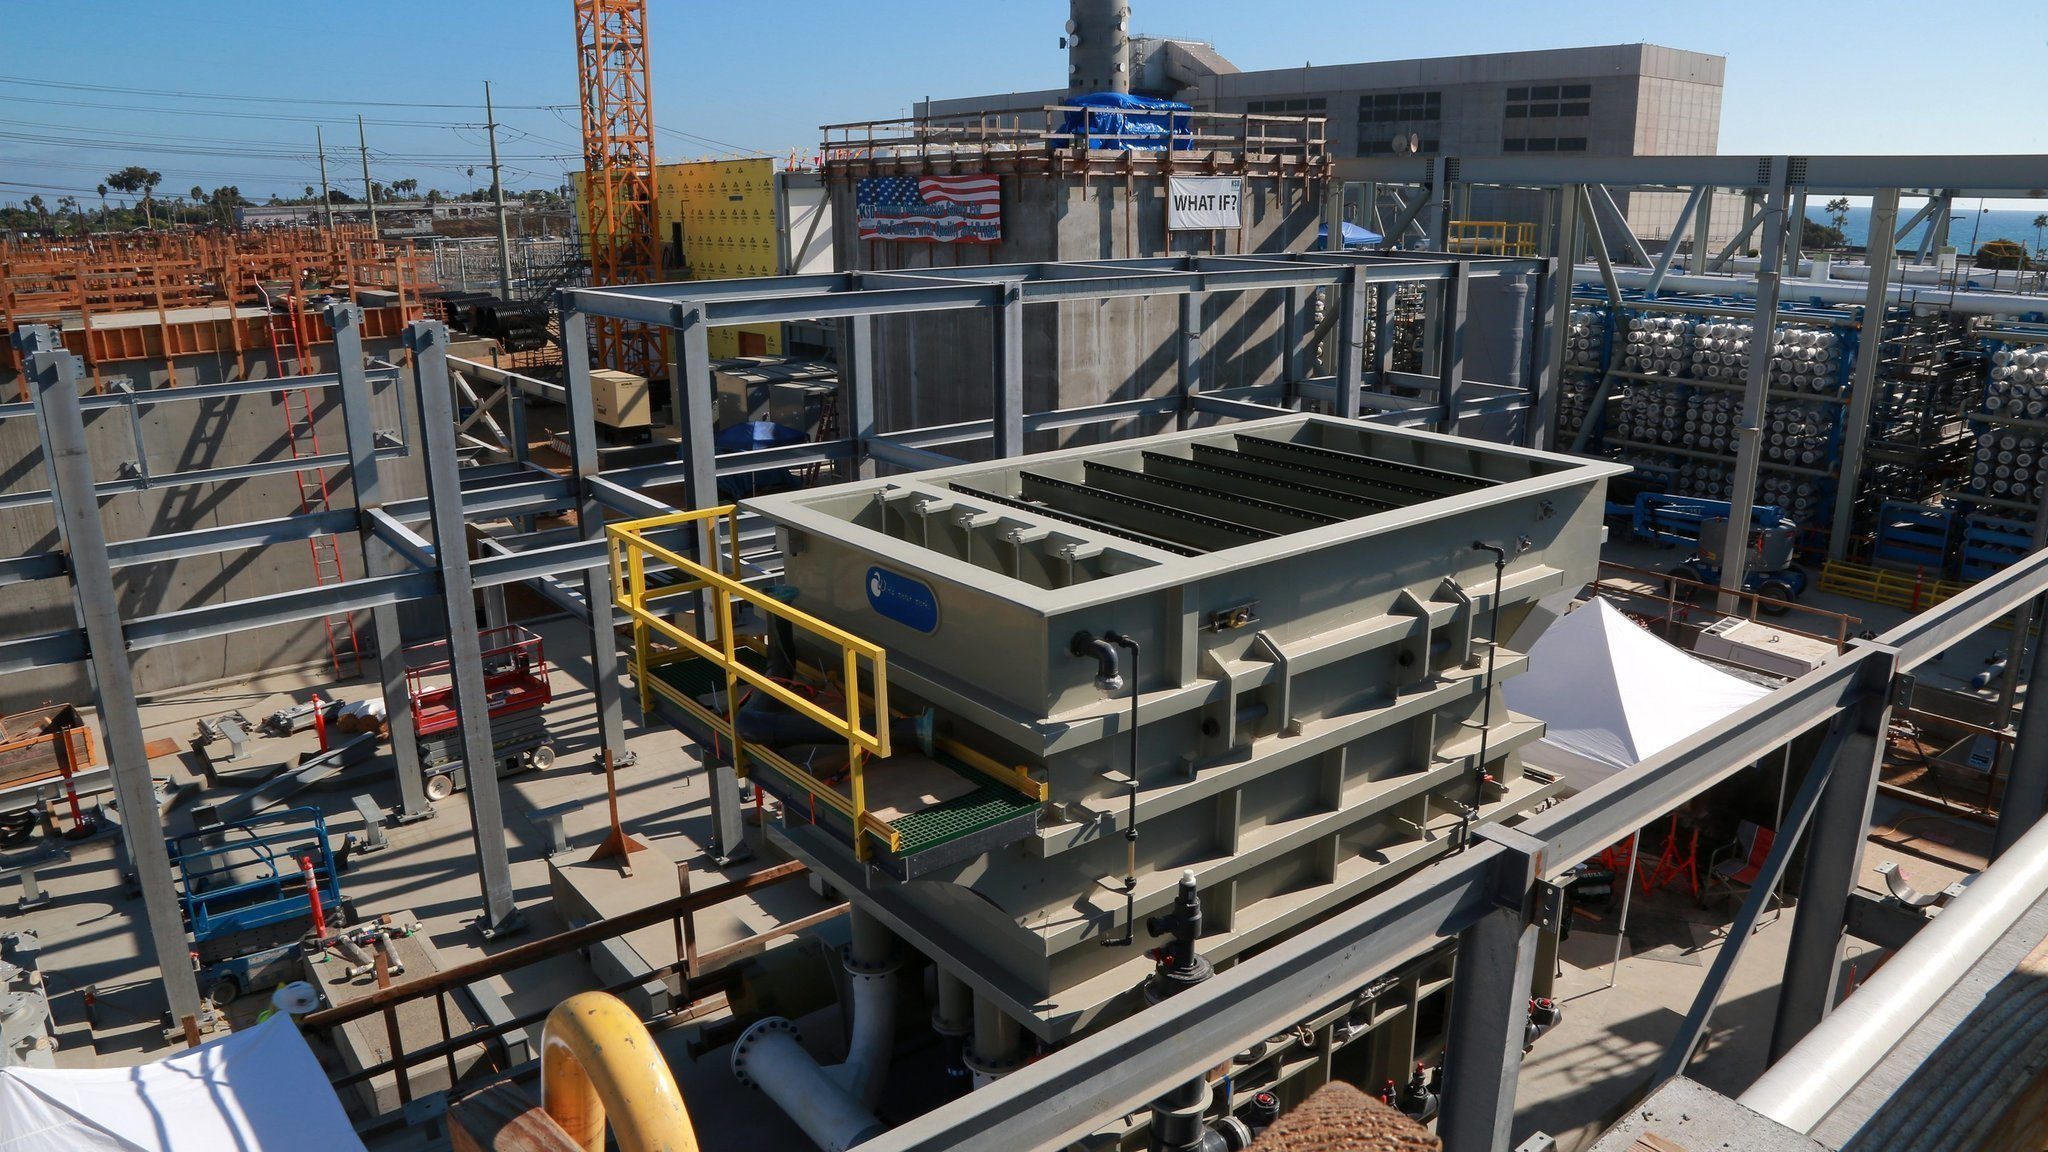 The Poseidon desal plant in Carlsbad will deliver new water to San